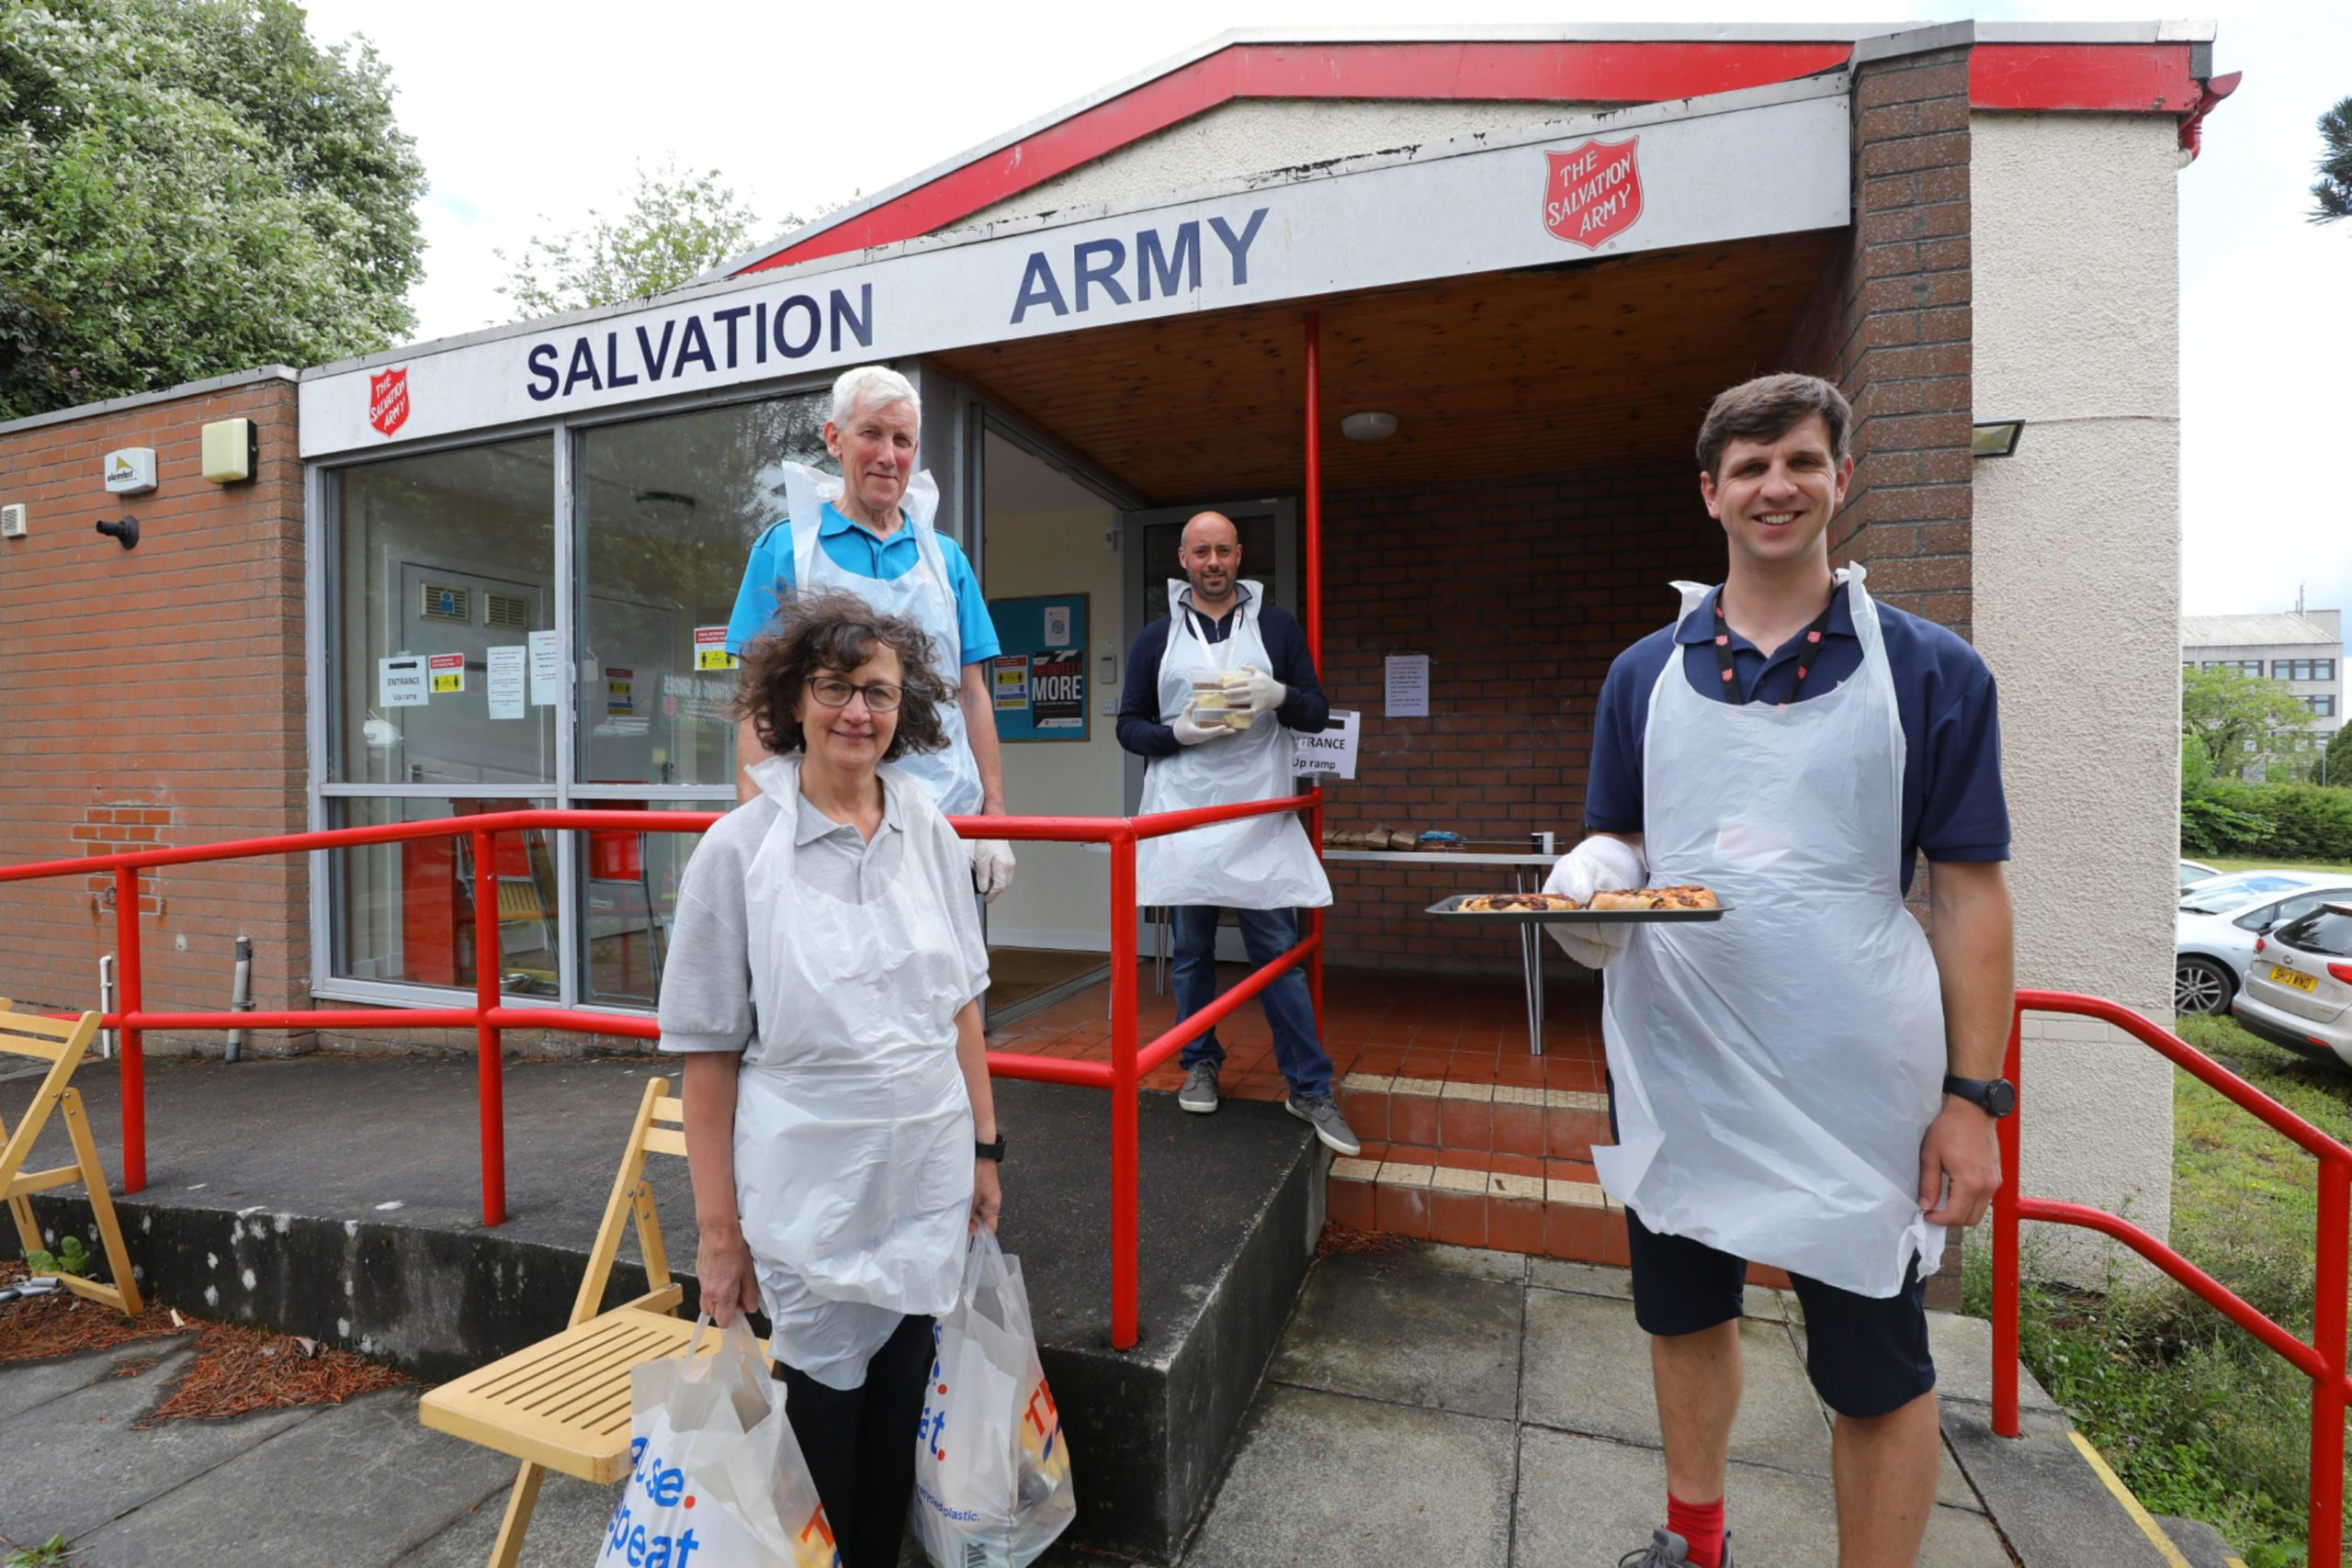 L-R: Carol Tucker, Gordon Tucker, Chris McAuley and Dean Bromage preparing to hand out food to the needy. (Picture: Dougie Nicolson / DCT Media)